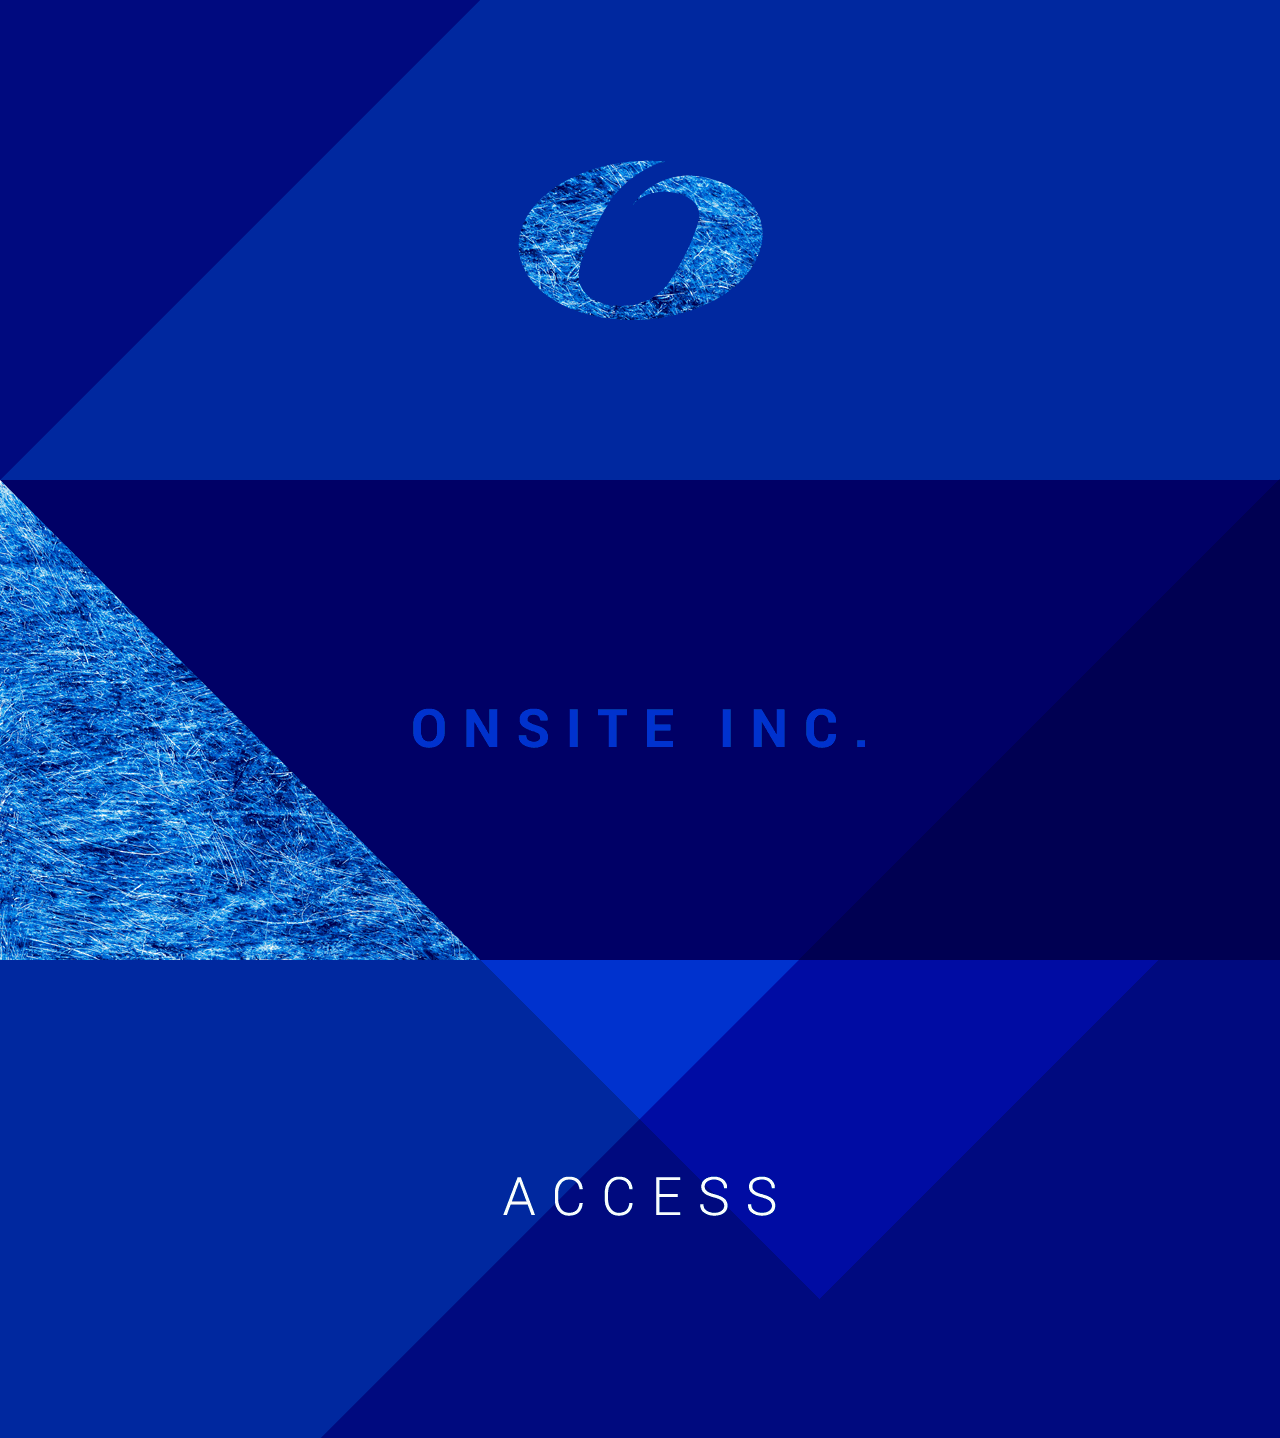 ONSITE INC. ACCESS